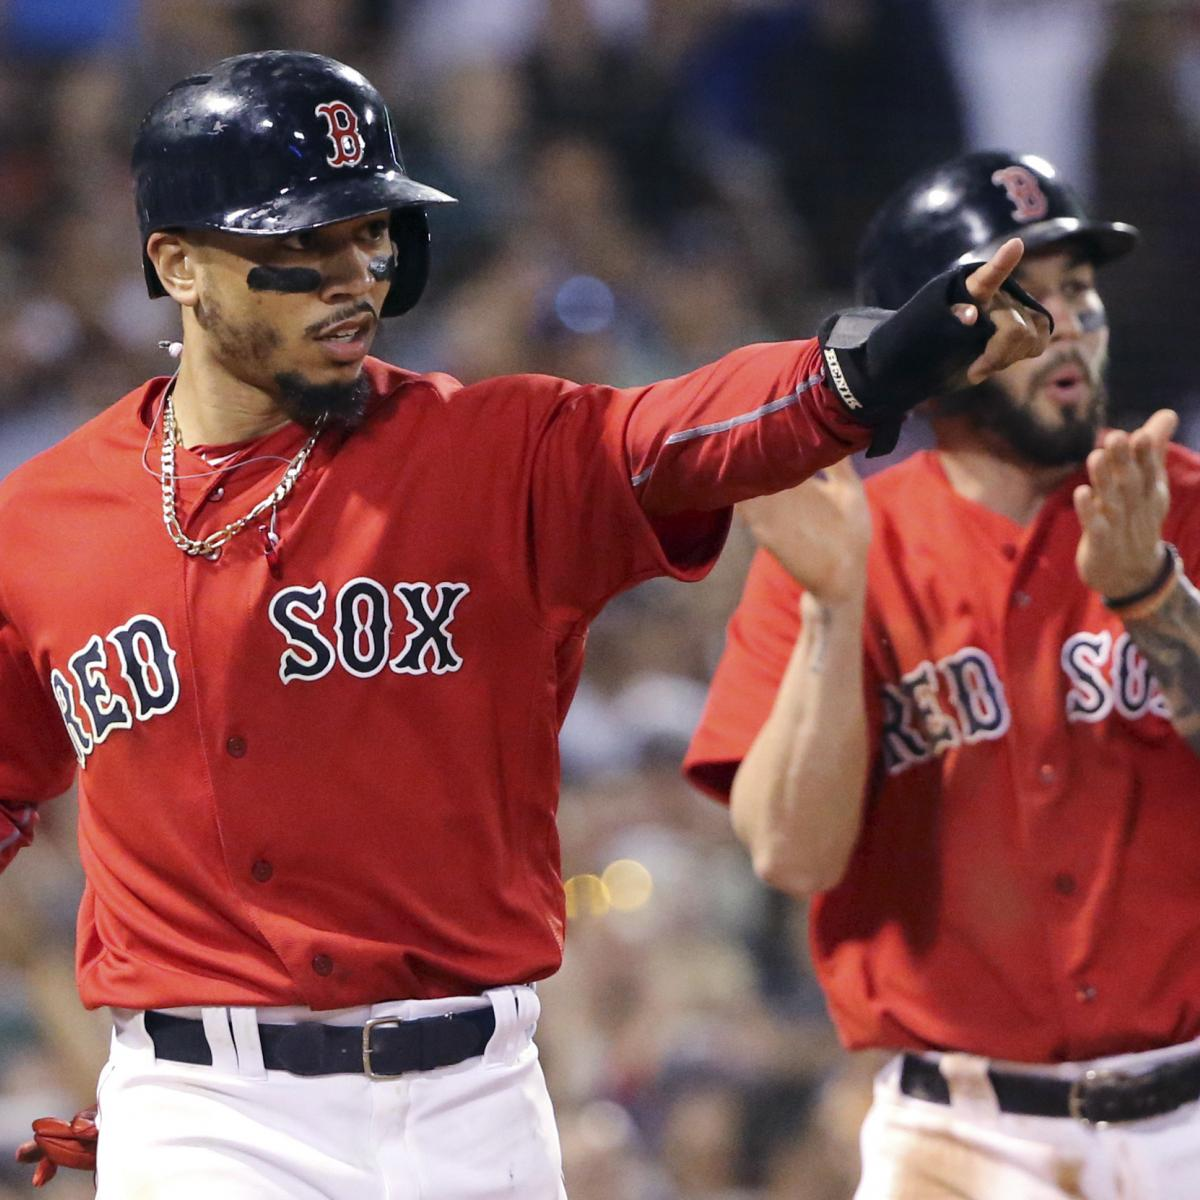 Red Sox Clinch AL East Division Title with Win vs. Yankees